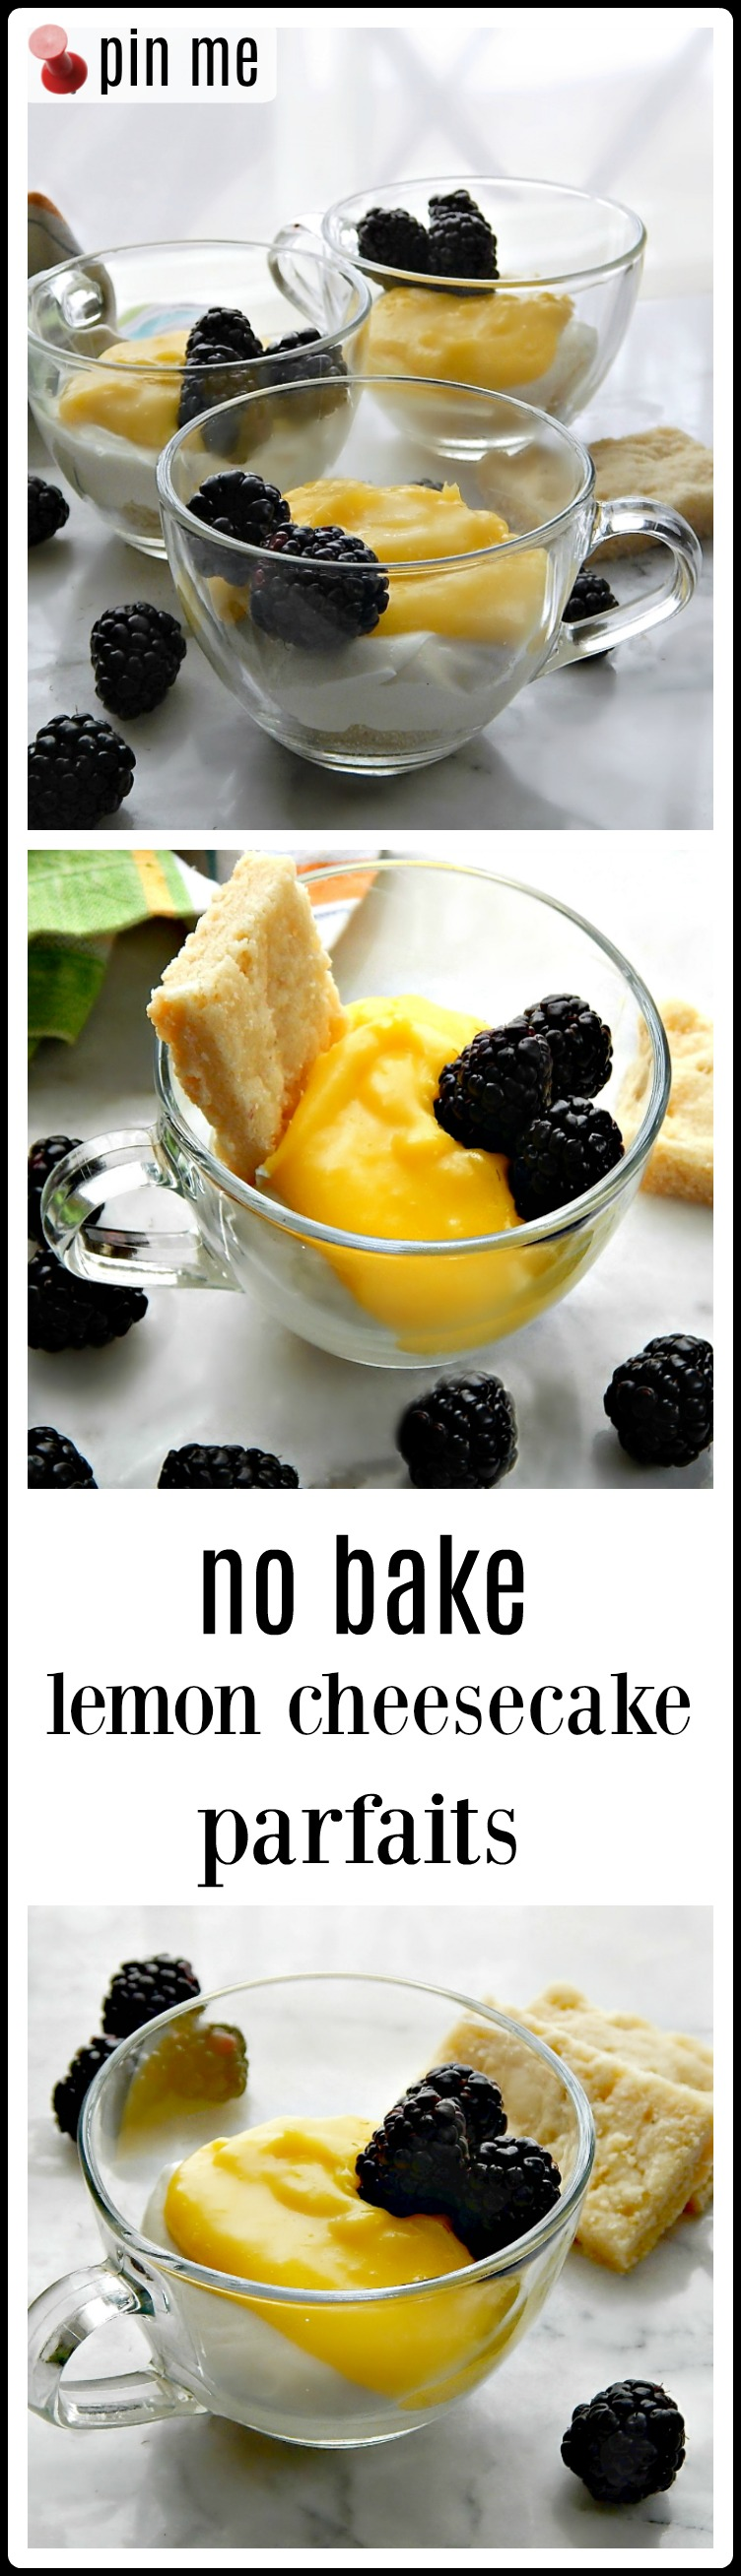 No Bake Lemon Cheesecake Parfaits are creamy & dreamy deliciousness. A base of shortbread crumbs grounds the lemony cheesecake and the topping of bright zesty lemon curd gives this easy, make-ahead dessert a one-two punch of lemony flavor. #No Bake Lemon Cheesecake Parfaits #Easter Dessert